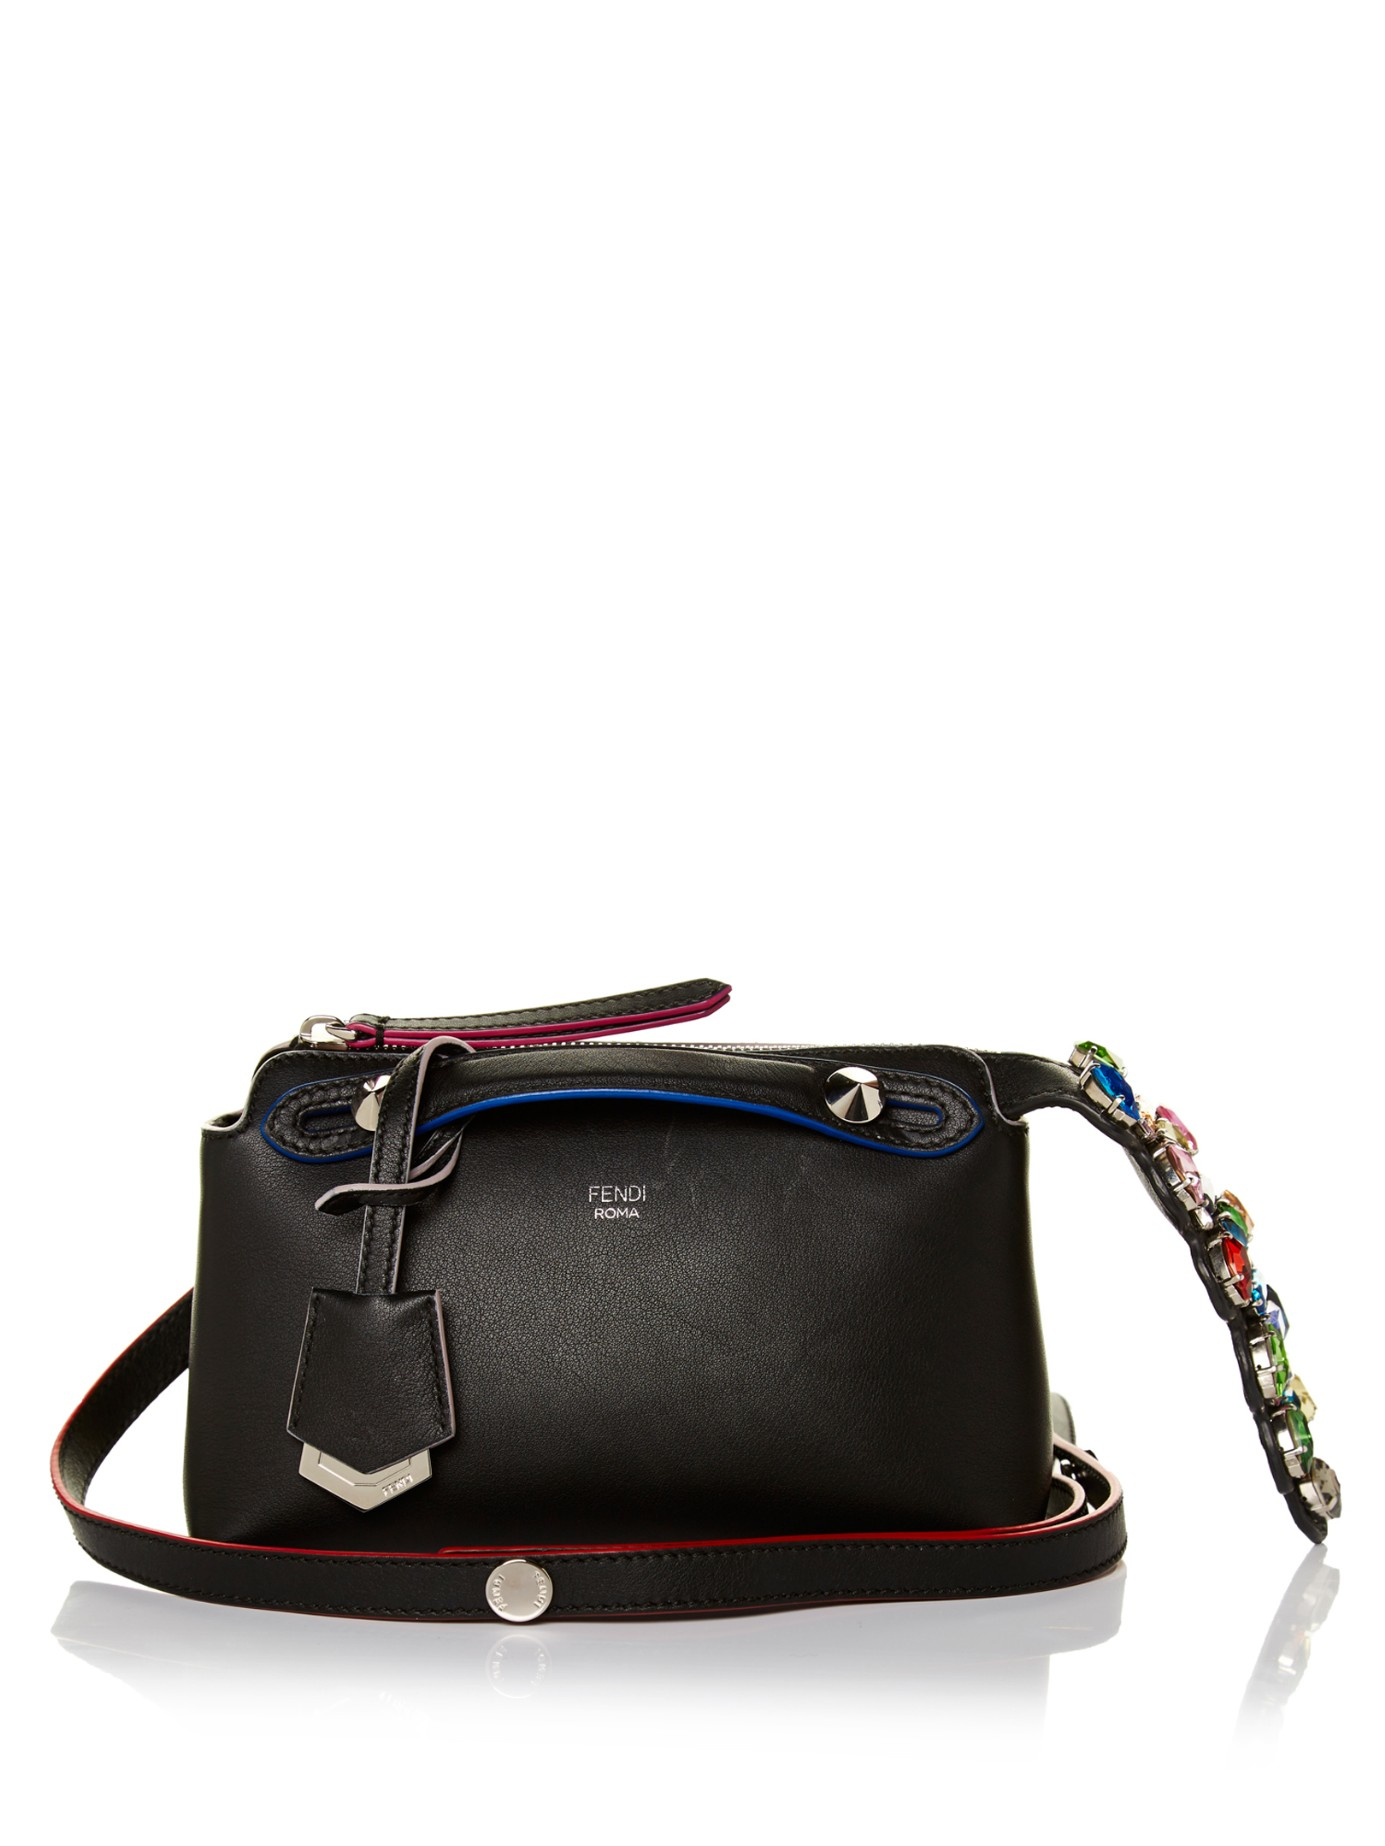 033e16fdfb80 Lyst - Fendi By The Way Mini Crystal-tail Cross-body Bag in Black